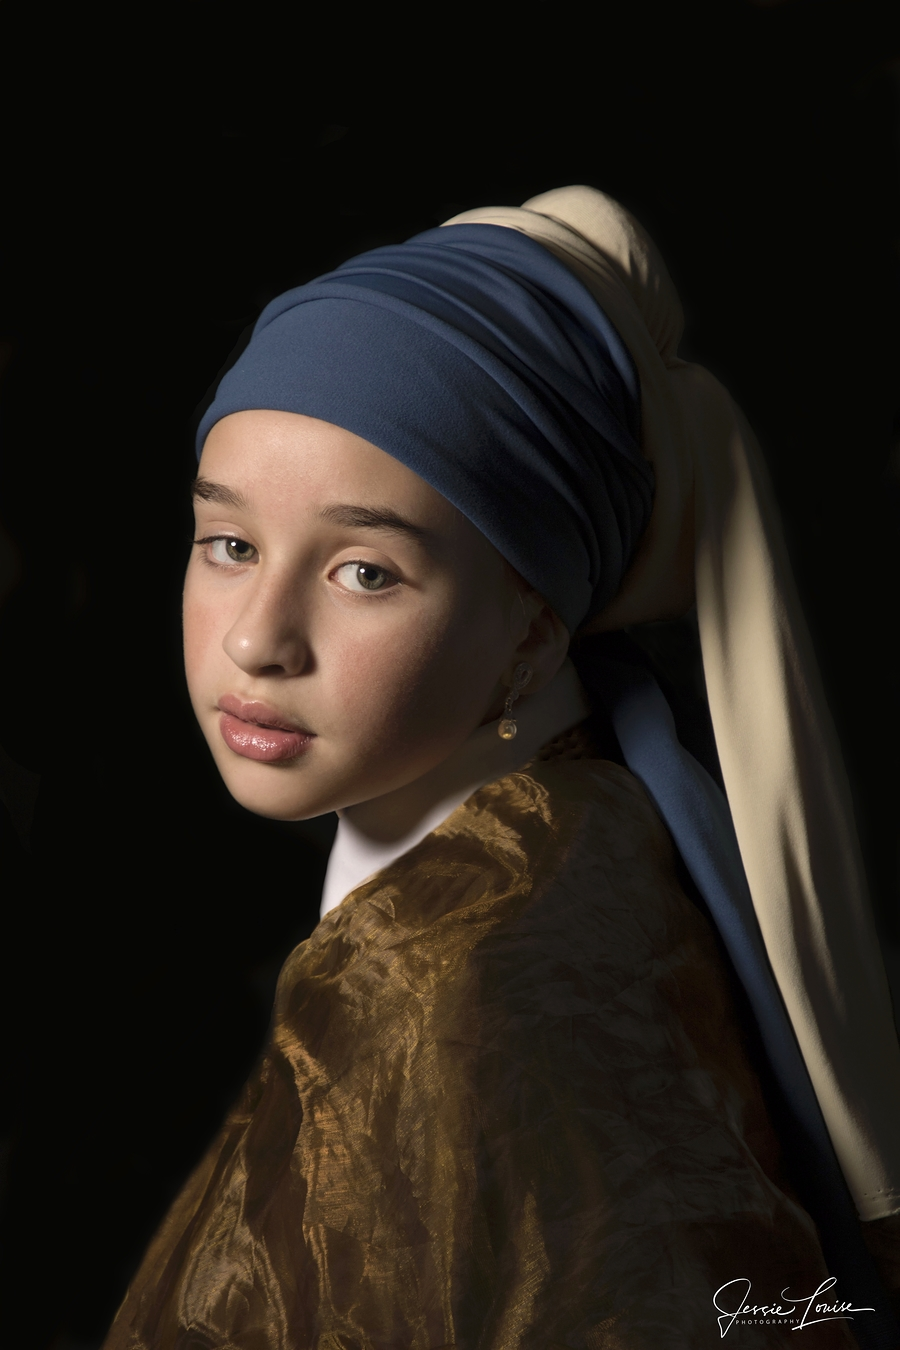 My Girl with the Pearl Earring / Photography by Jessie Louise / Uploaded 22nd September 2019 @ 08:28 PM